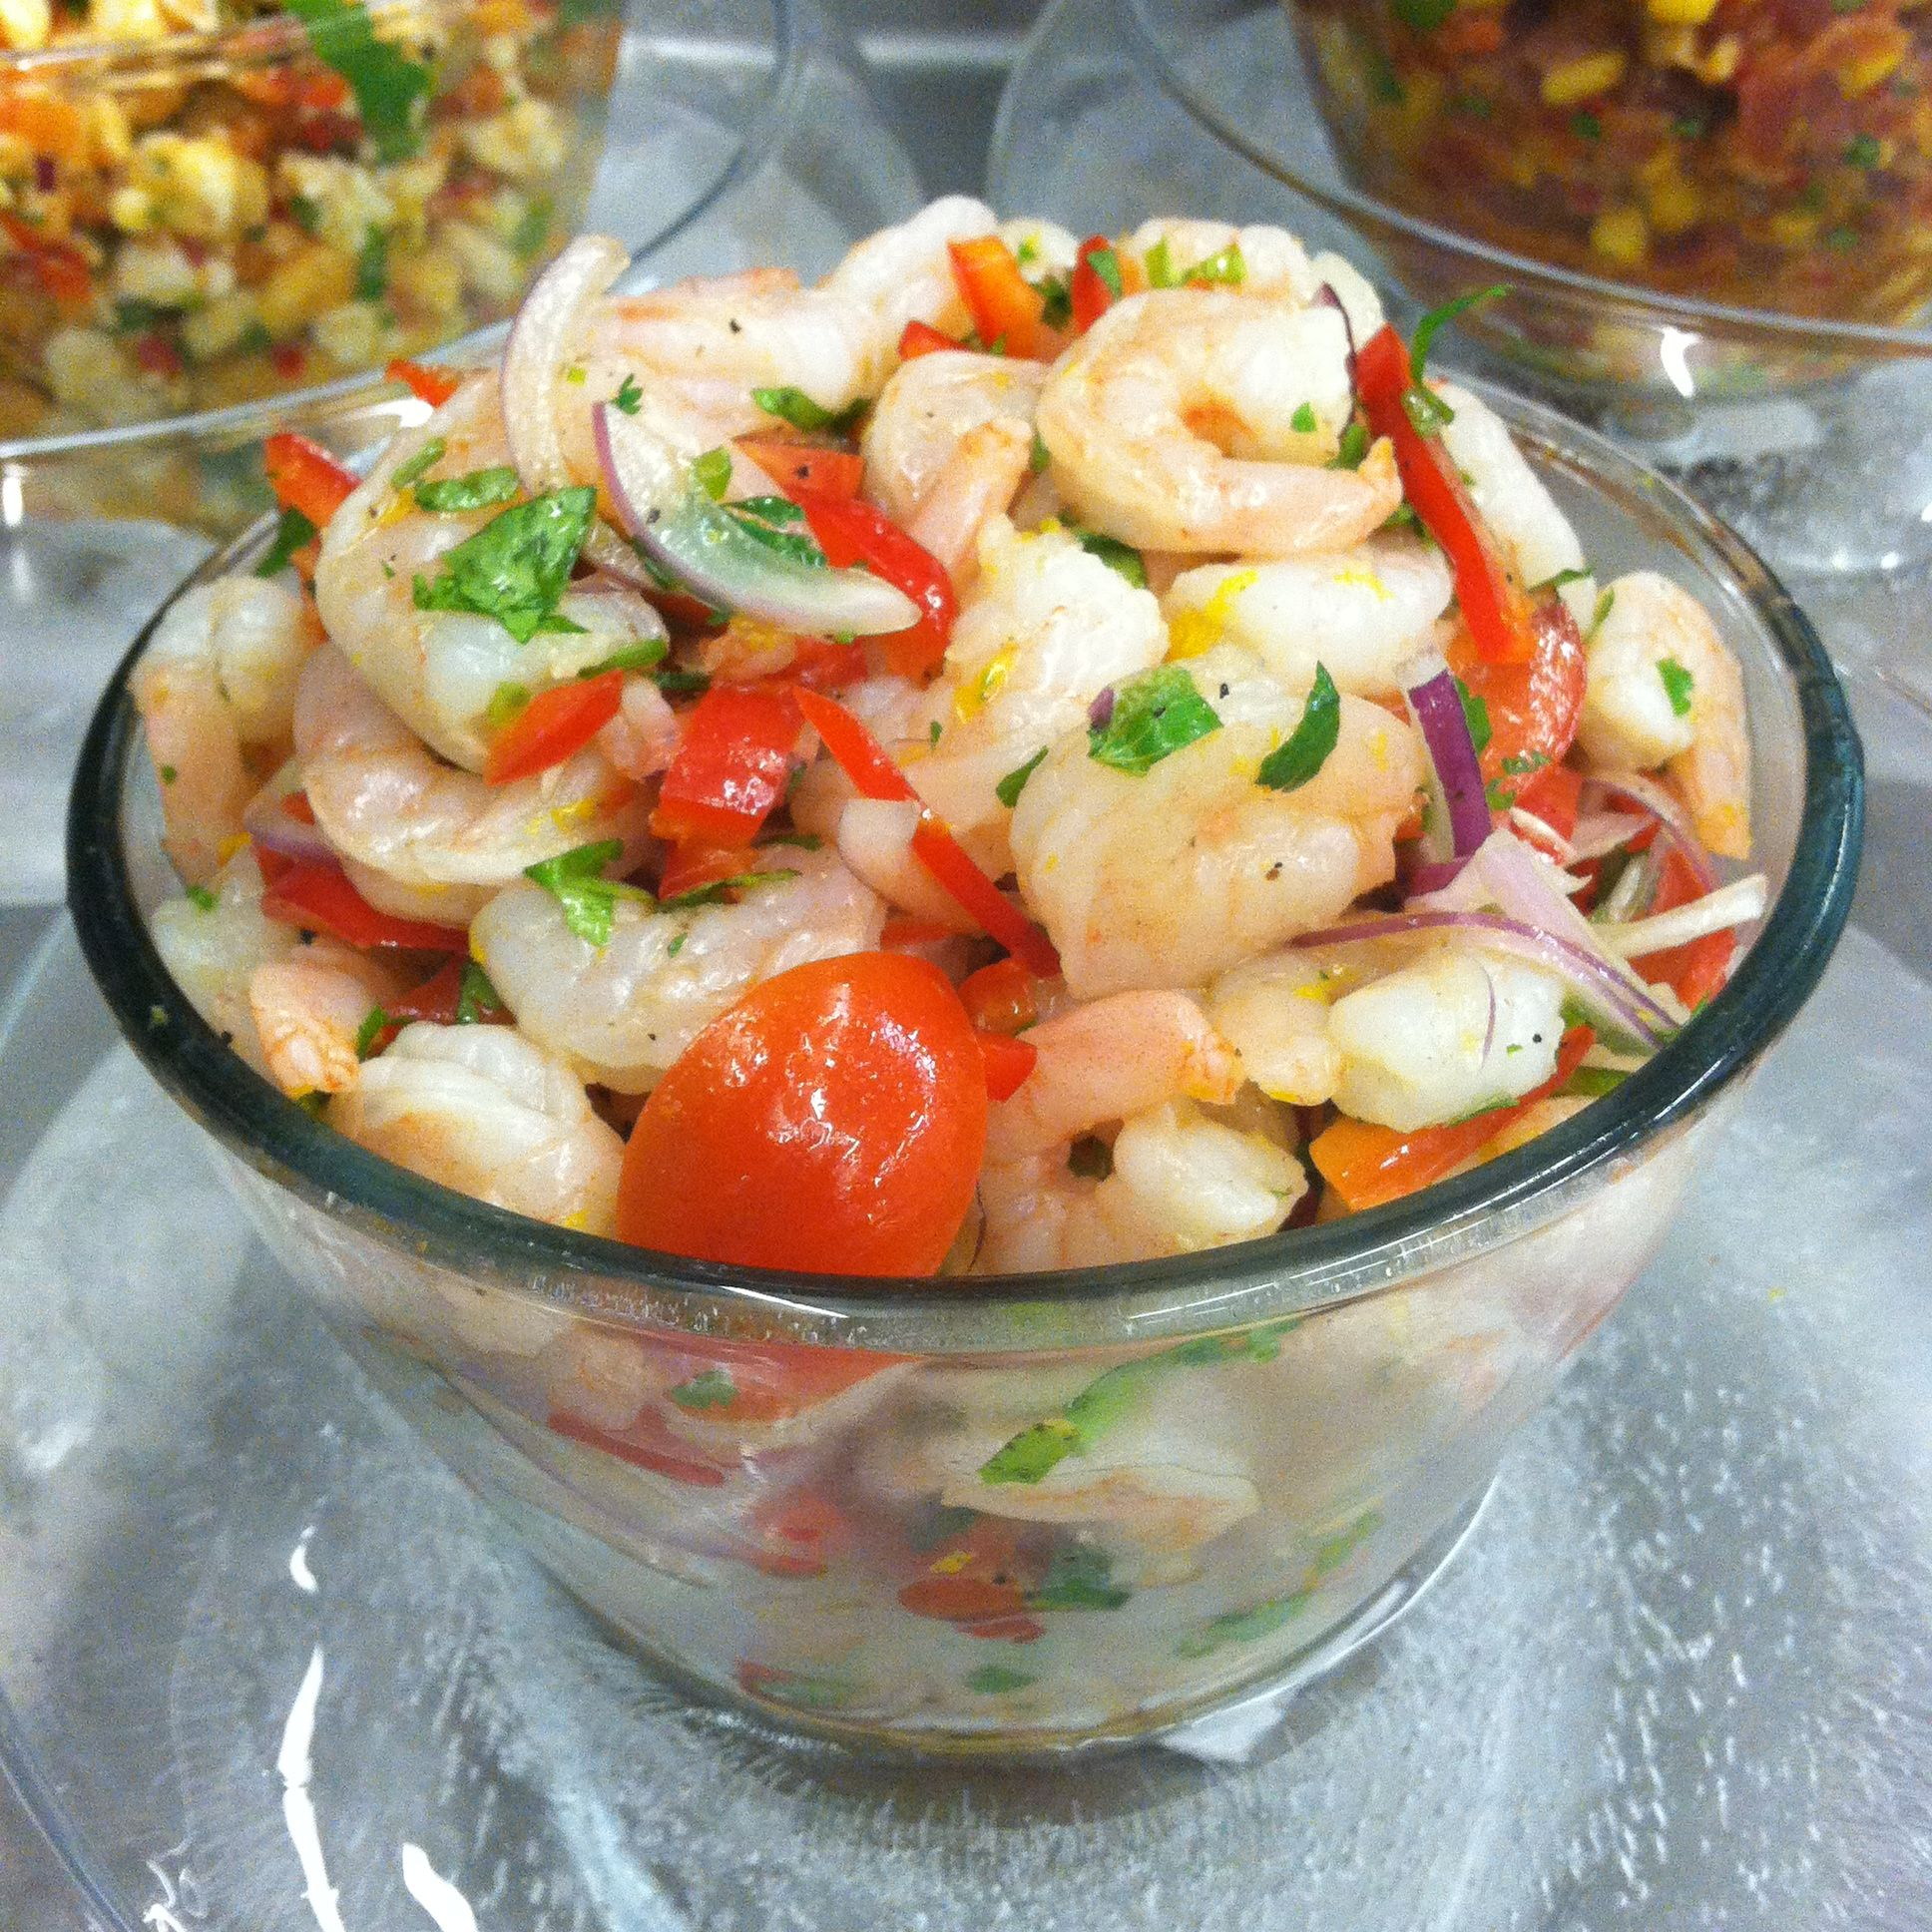 Pin by FCI Catering & Events on FCI Hors D'Oeuvres | Pinterest